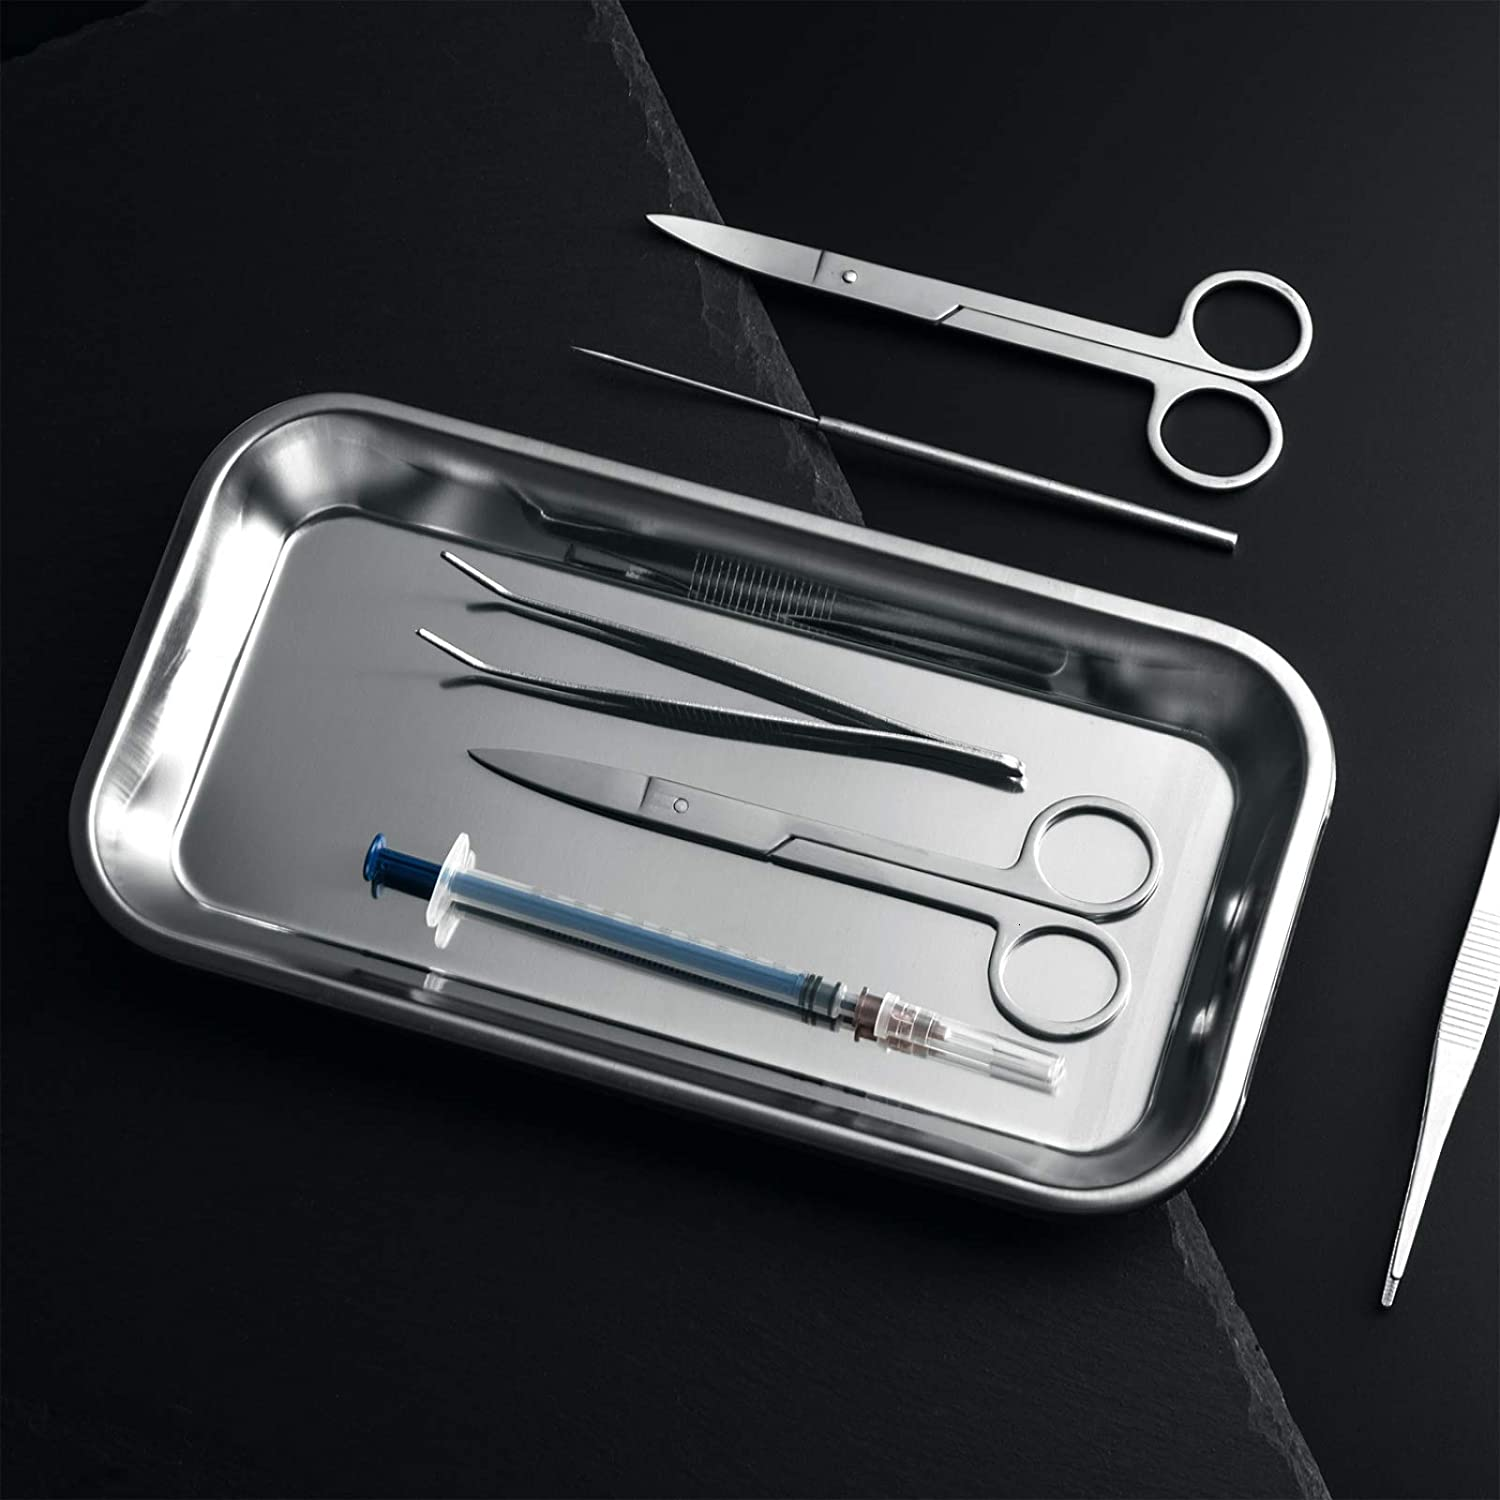 Tattoo Tool Silver Stainless Steel Tray for Lab Instrument Supplies COYMOS 3 Pack Surgical Tray